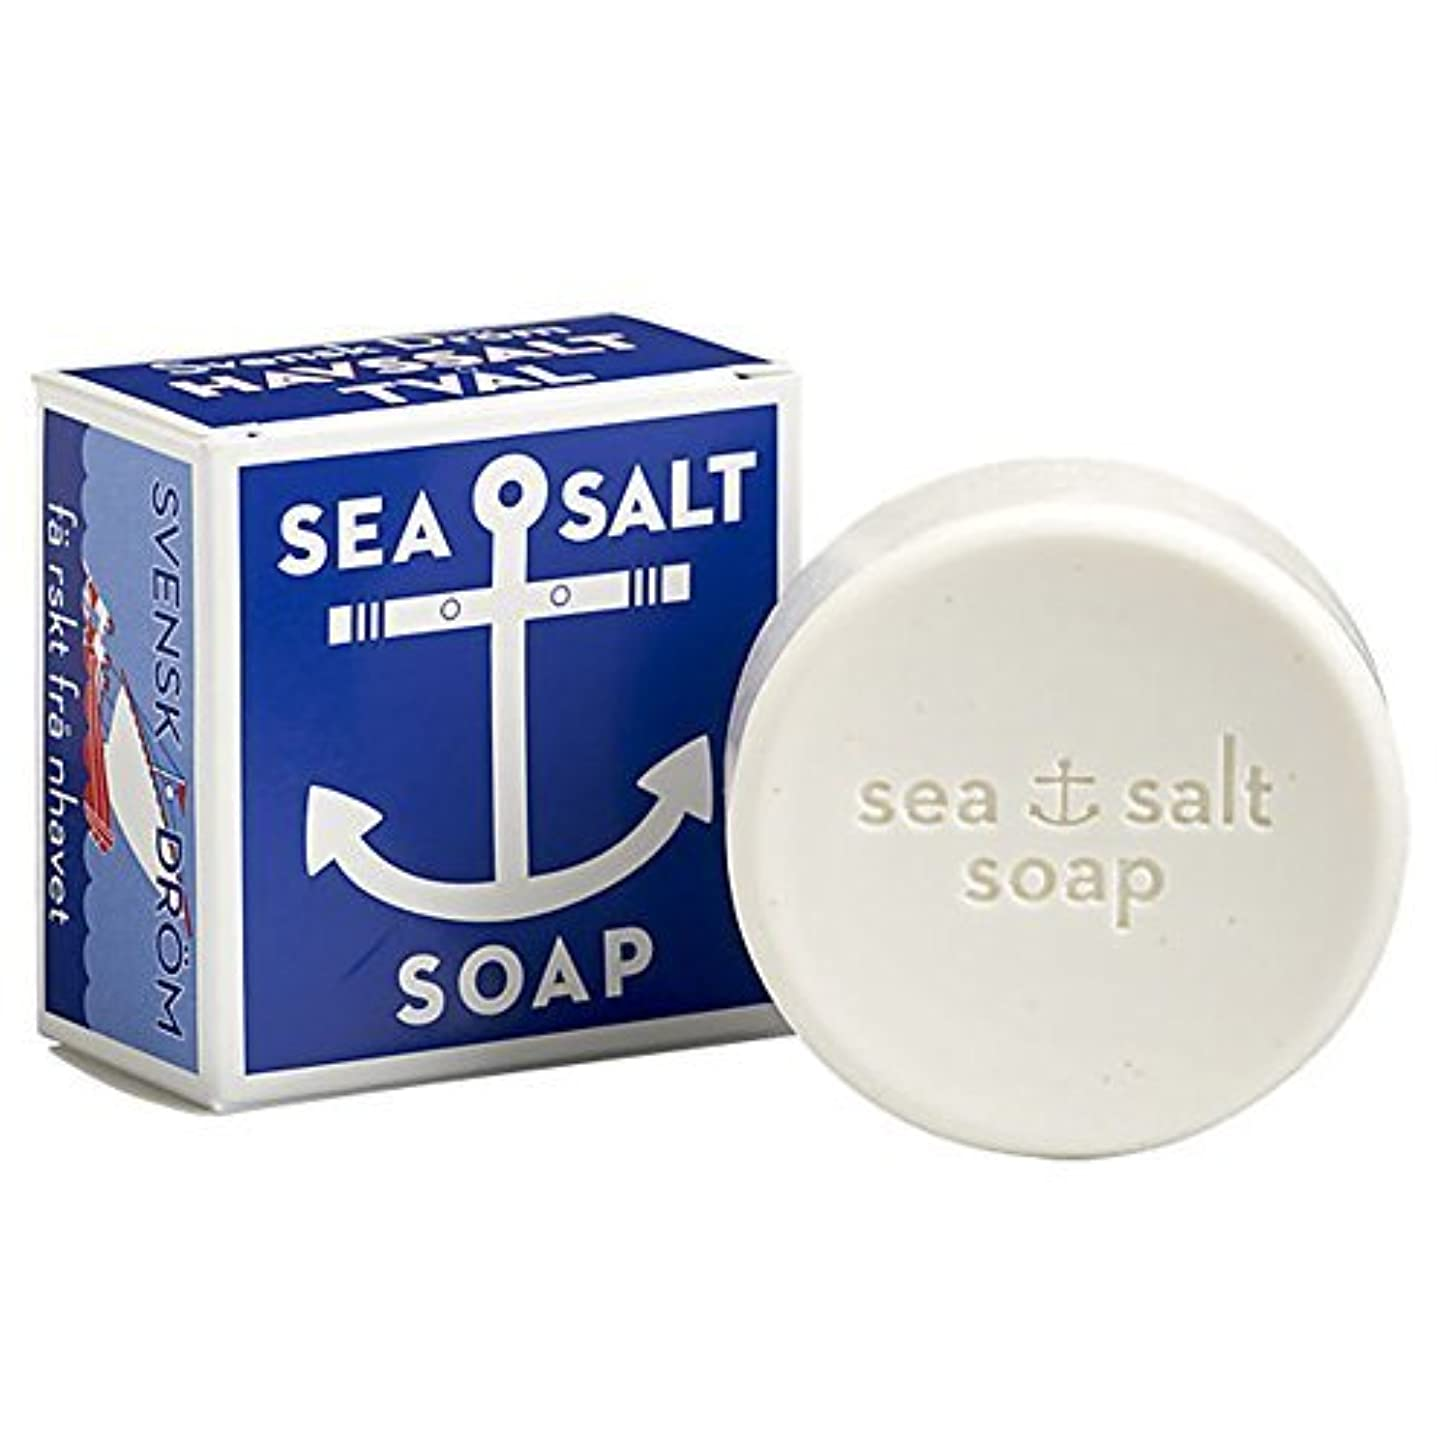 判読できないシンク原告Swedish Dream Sea Salt Invigorating Bath Soap - One 4.3 oz Bar by Swedish Dream [並行輸入品]